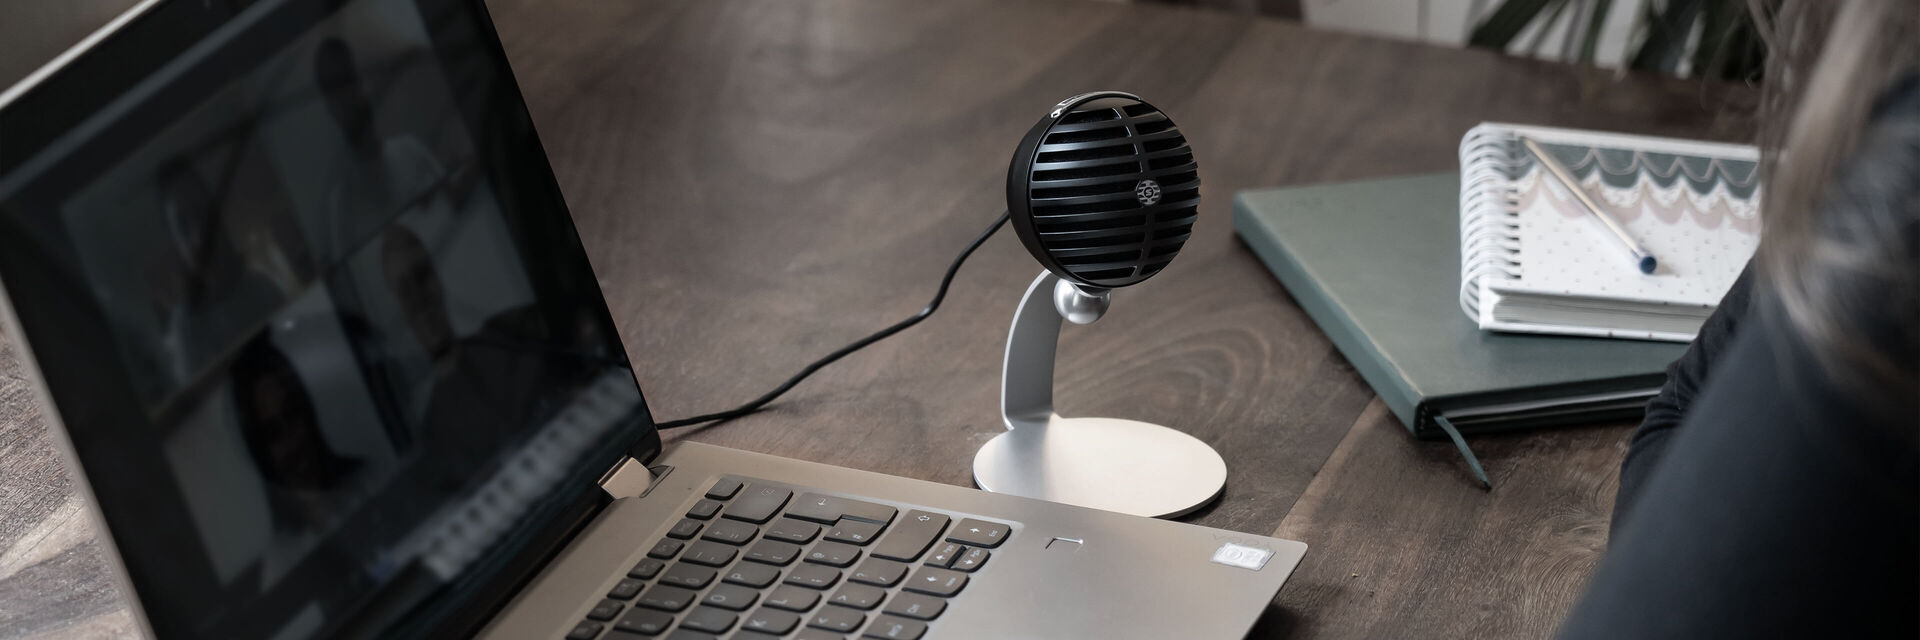 MV5C_Home_Office_Microphone_Lifestyle_Windows_Set_B_3-3840x1280